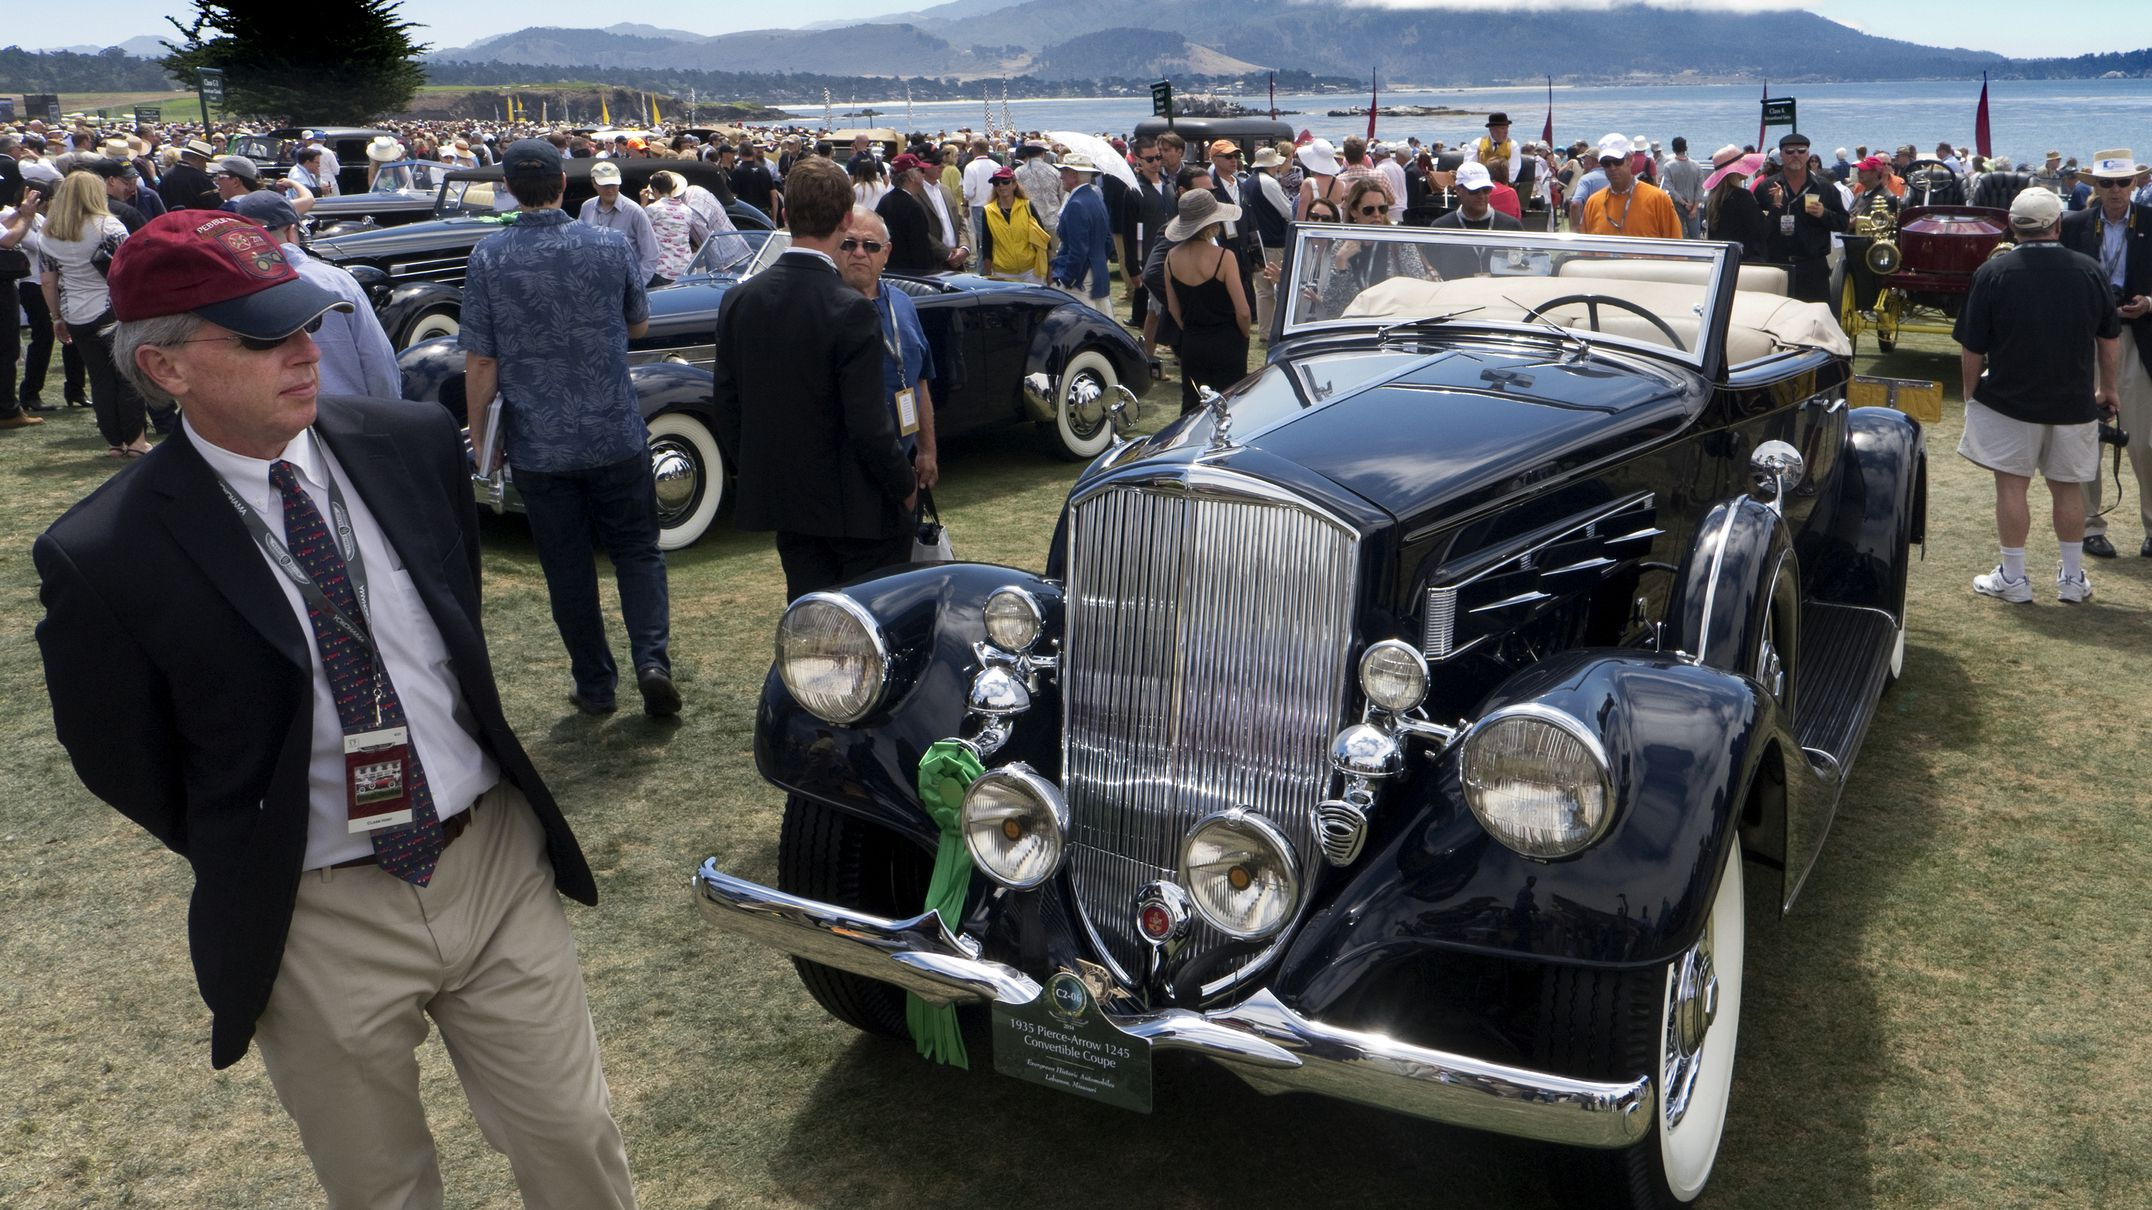 Concours D Elegance >> Pebble Beach Concours D Elegance What You Need To Know